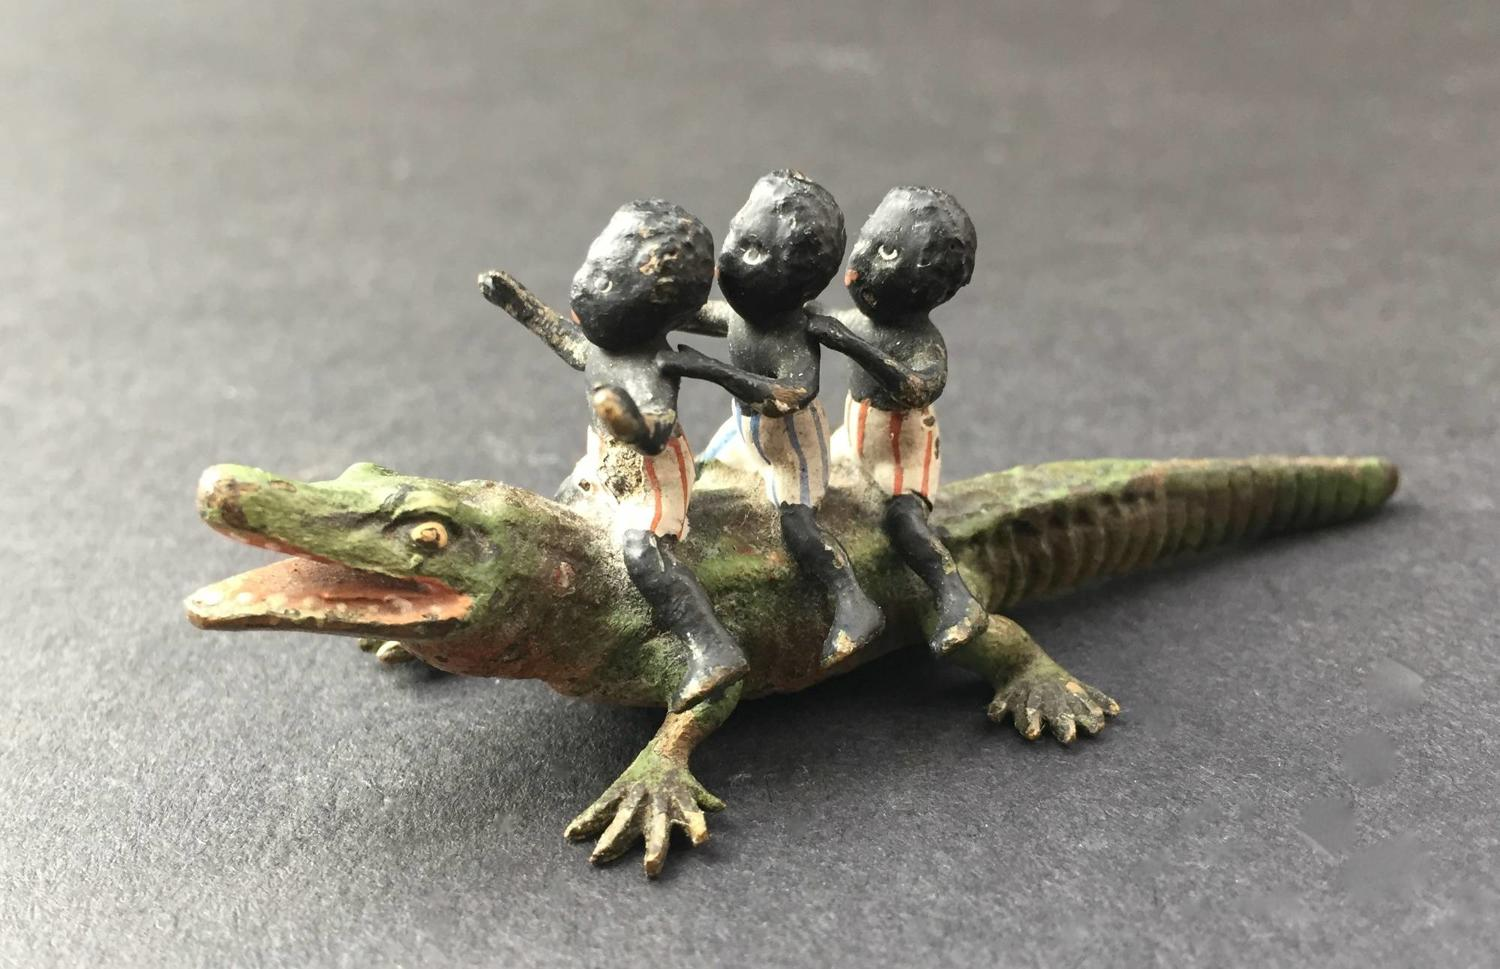 Austrian Cold Painted Group of Black Boys & Crocodile